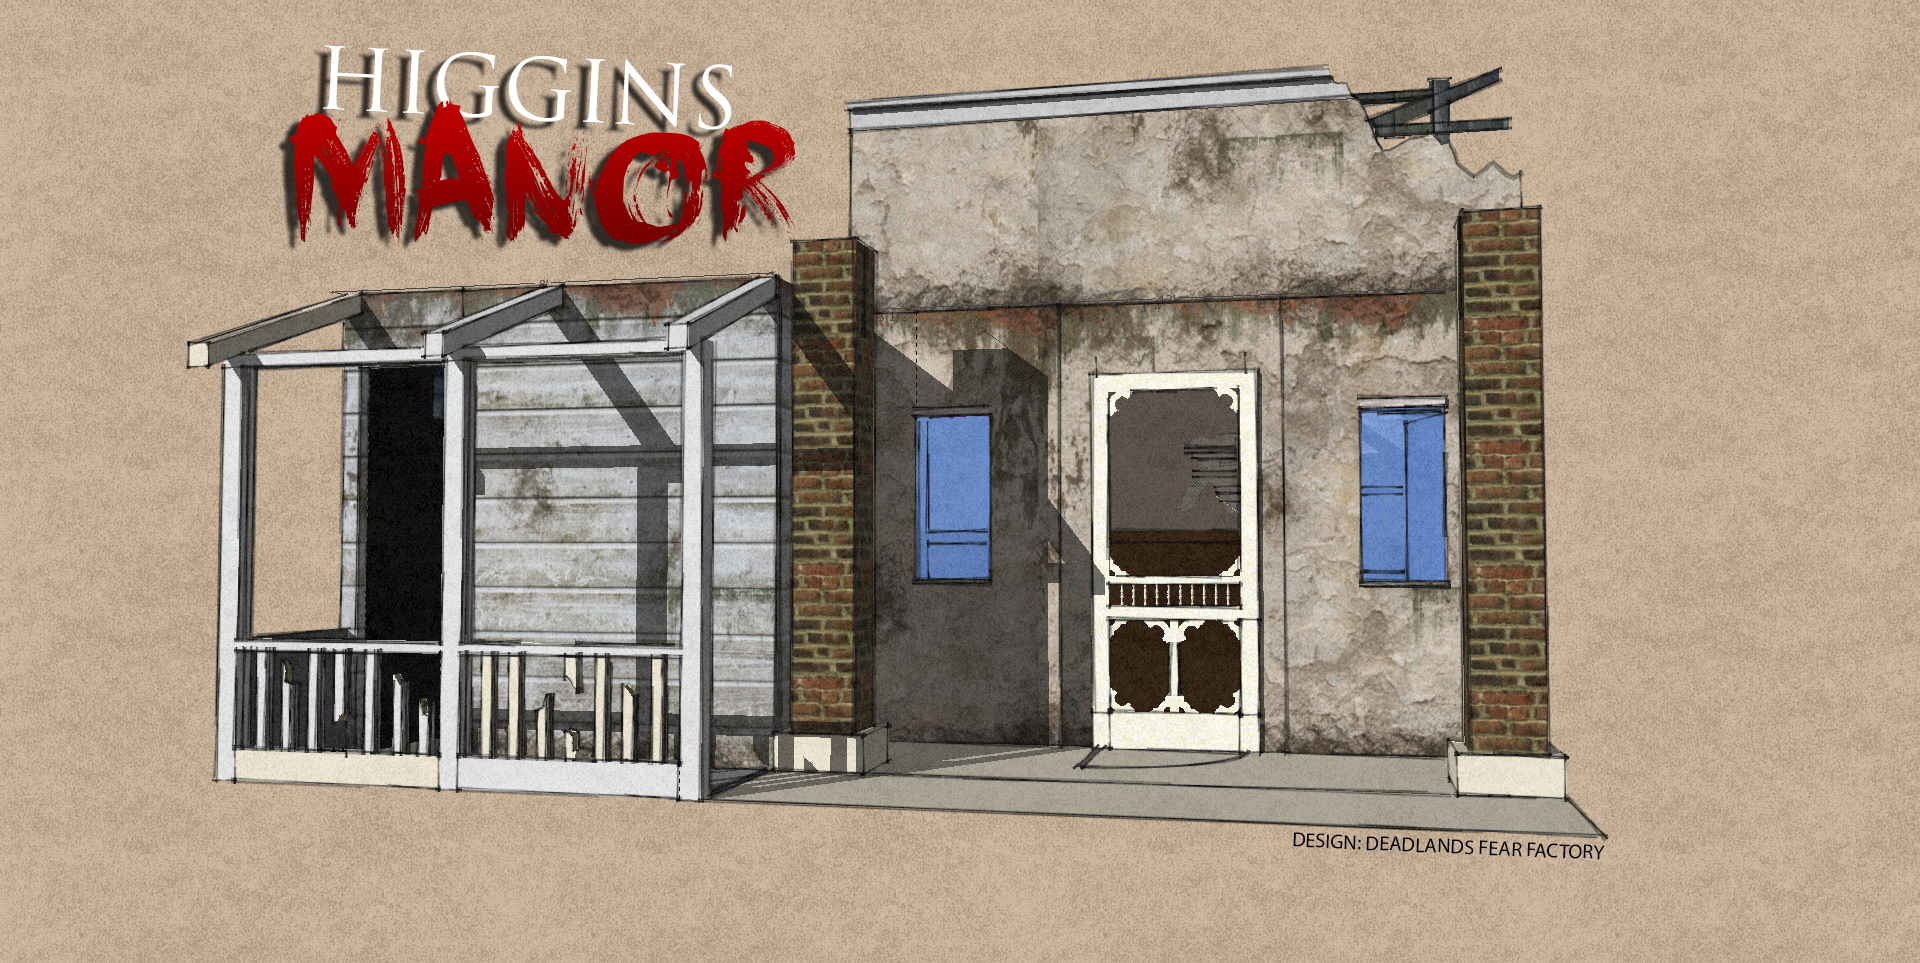 Concept art for Higgins Manor's mini-haunt at Midsummer Scream. (Image courtesy of Midsummer Scream and Deadlands Fear Factory.)